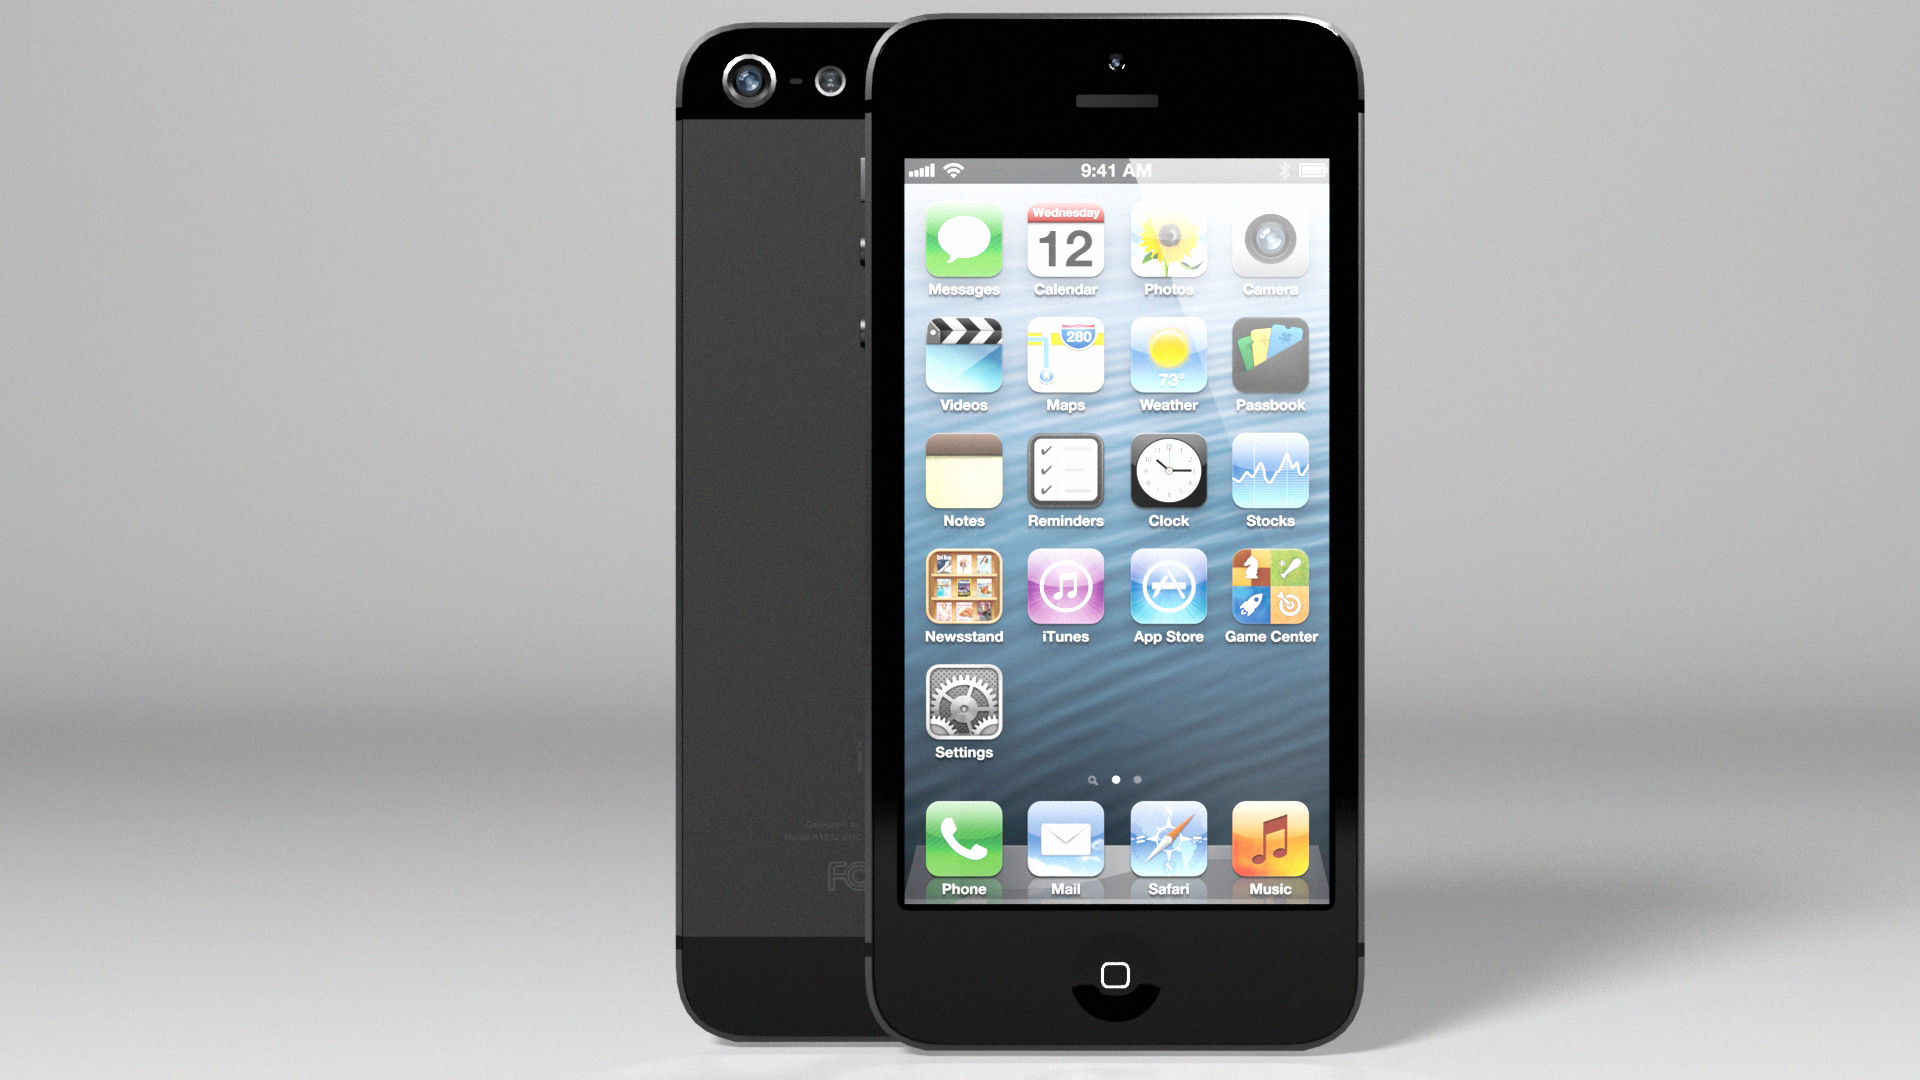 Iphone 5 Black Edition Silver Vray 3d Model Max Obj 3ds Fbx Dxf Dwg 4